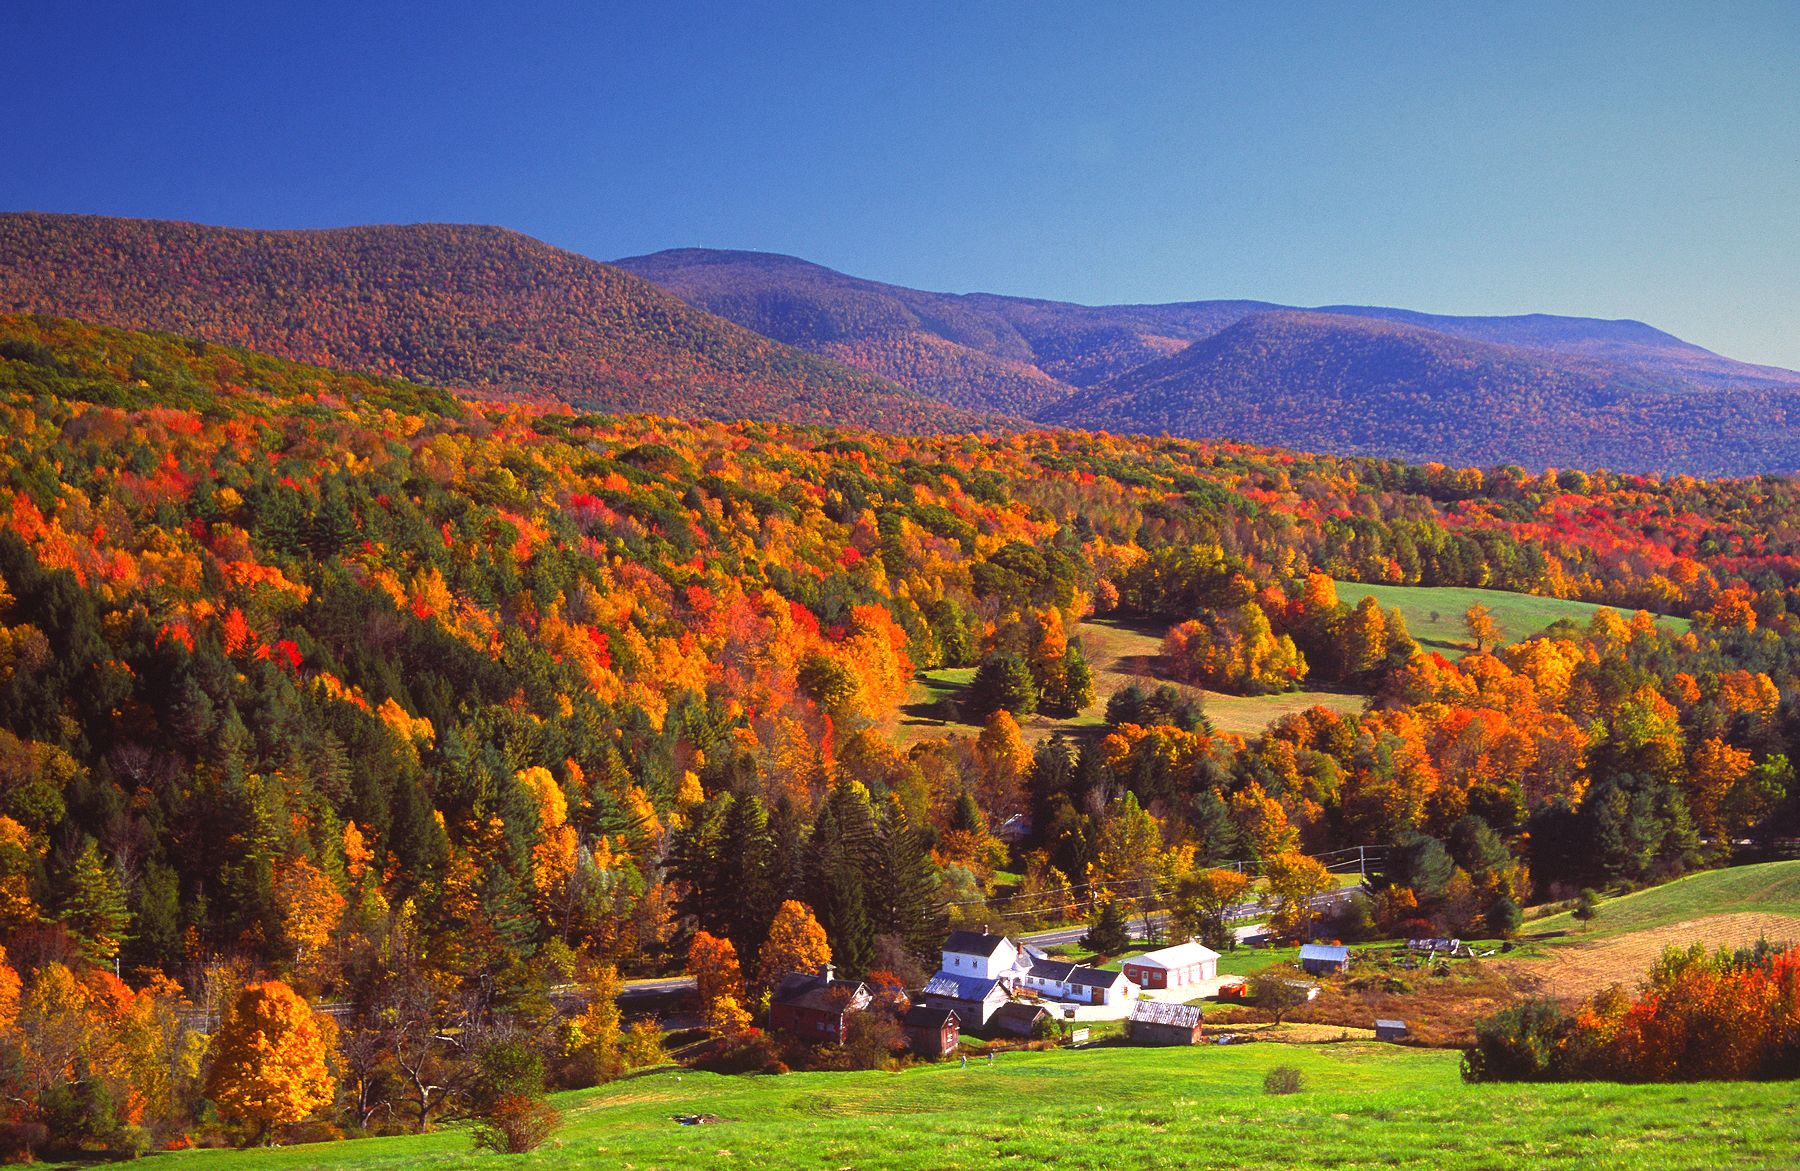 20 of the Best Fall Getaways for a Weekend Escape